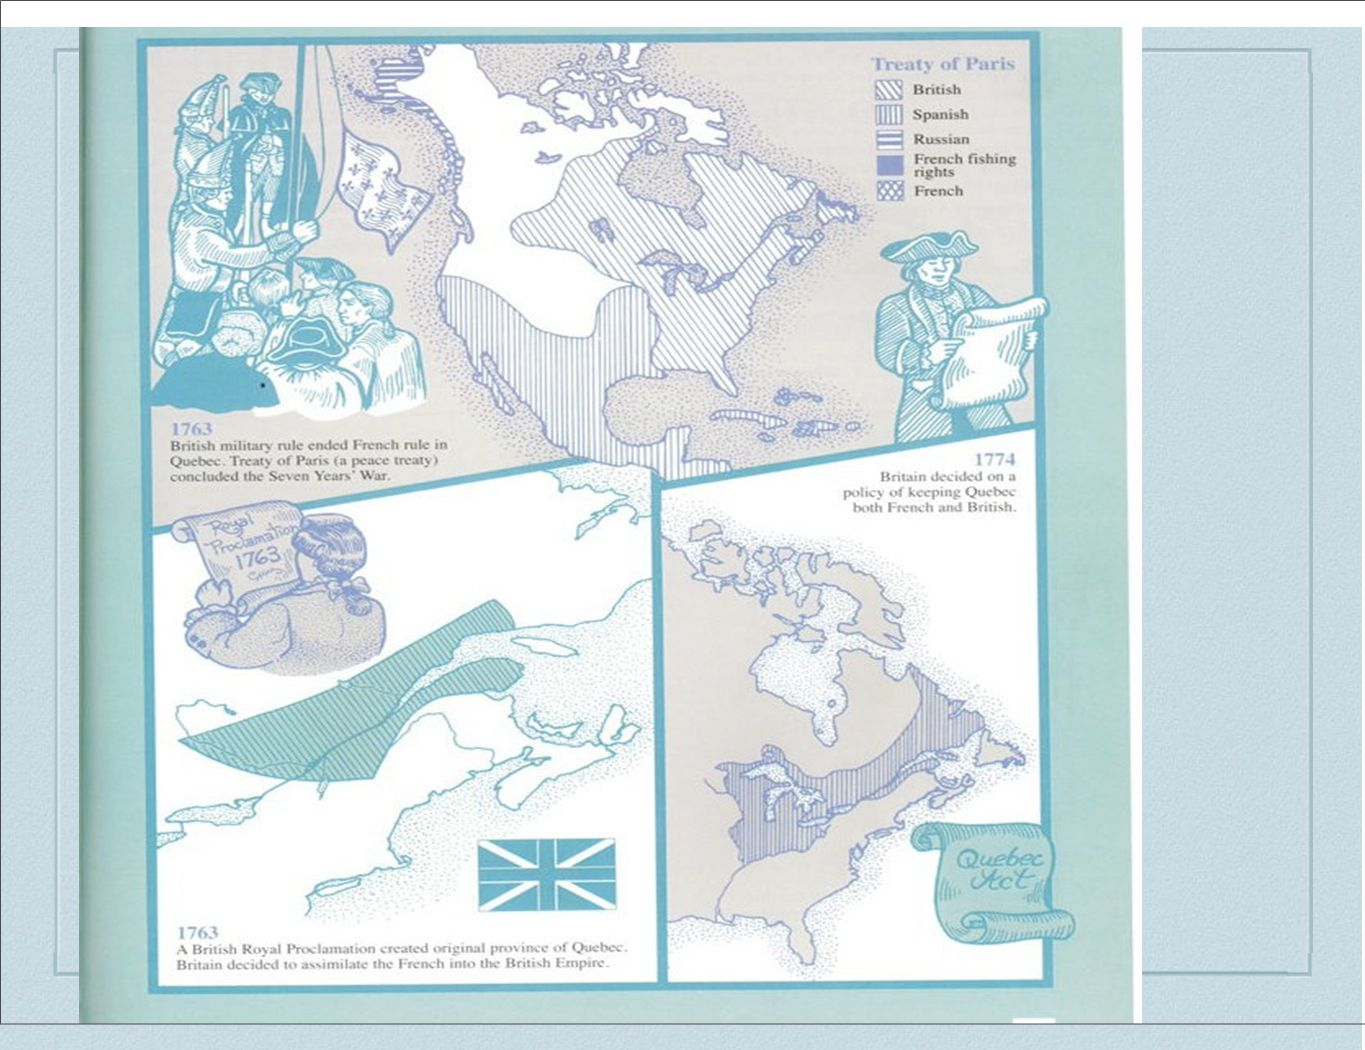 Overview ❖ 1713 - British vs.French War in Europe and North America ends.